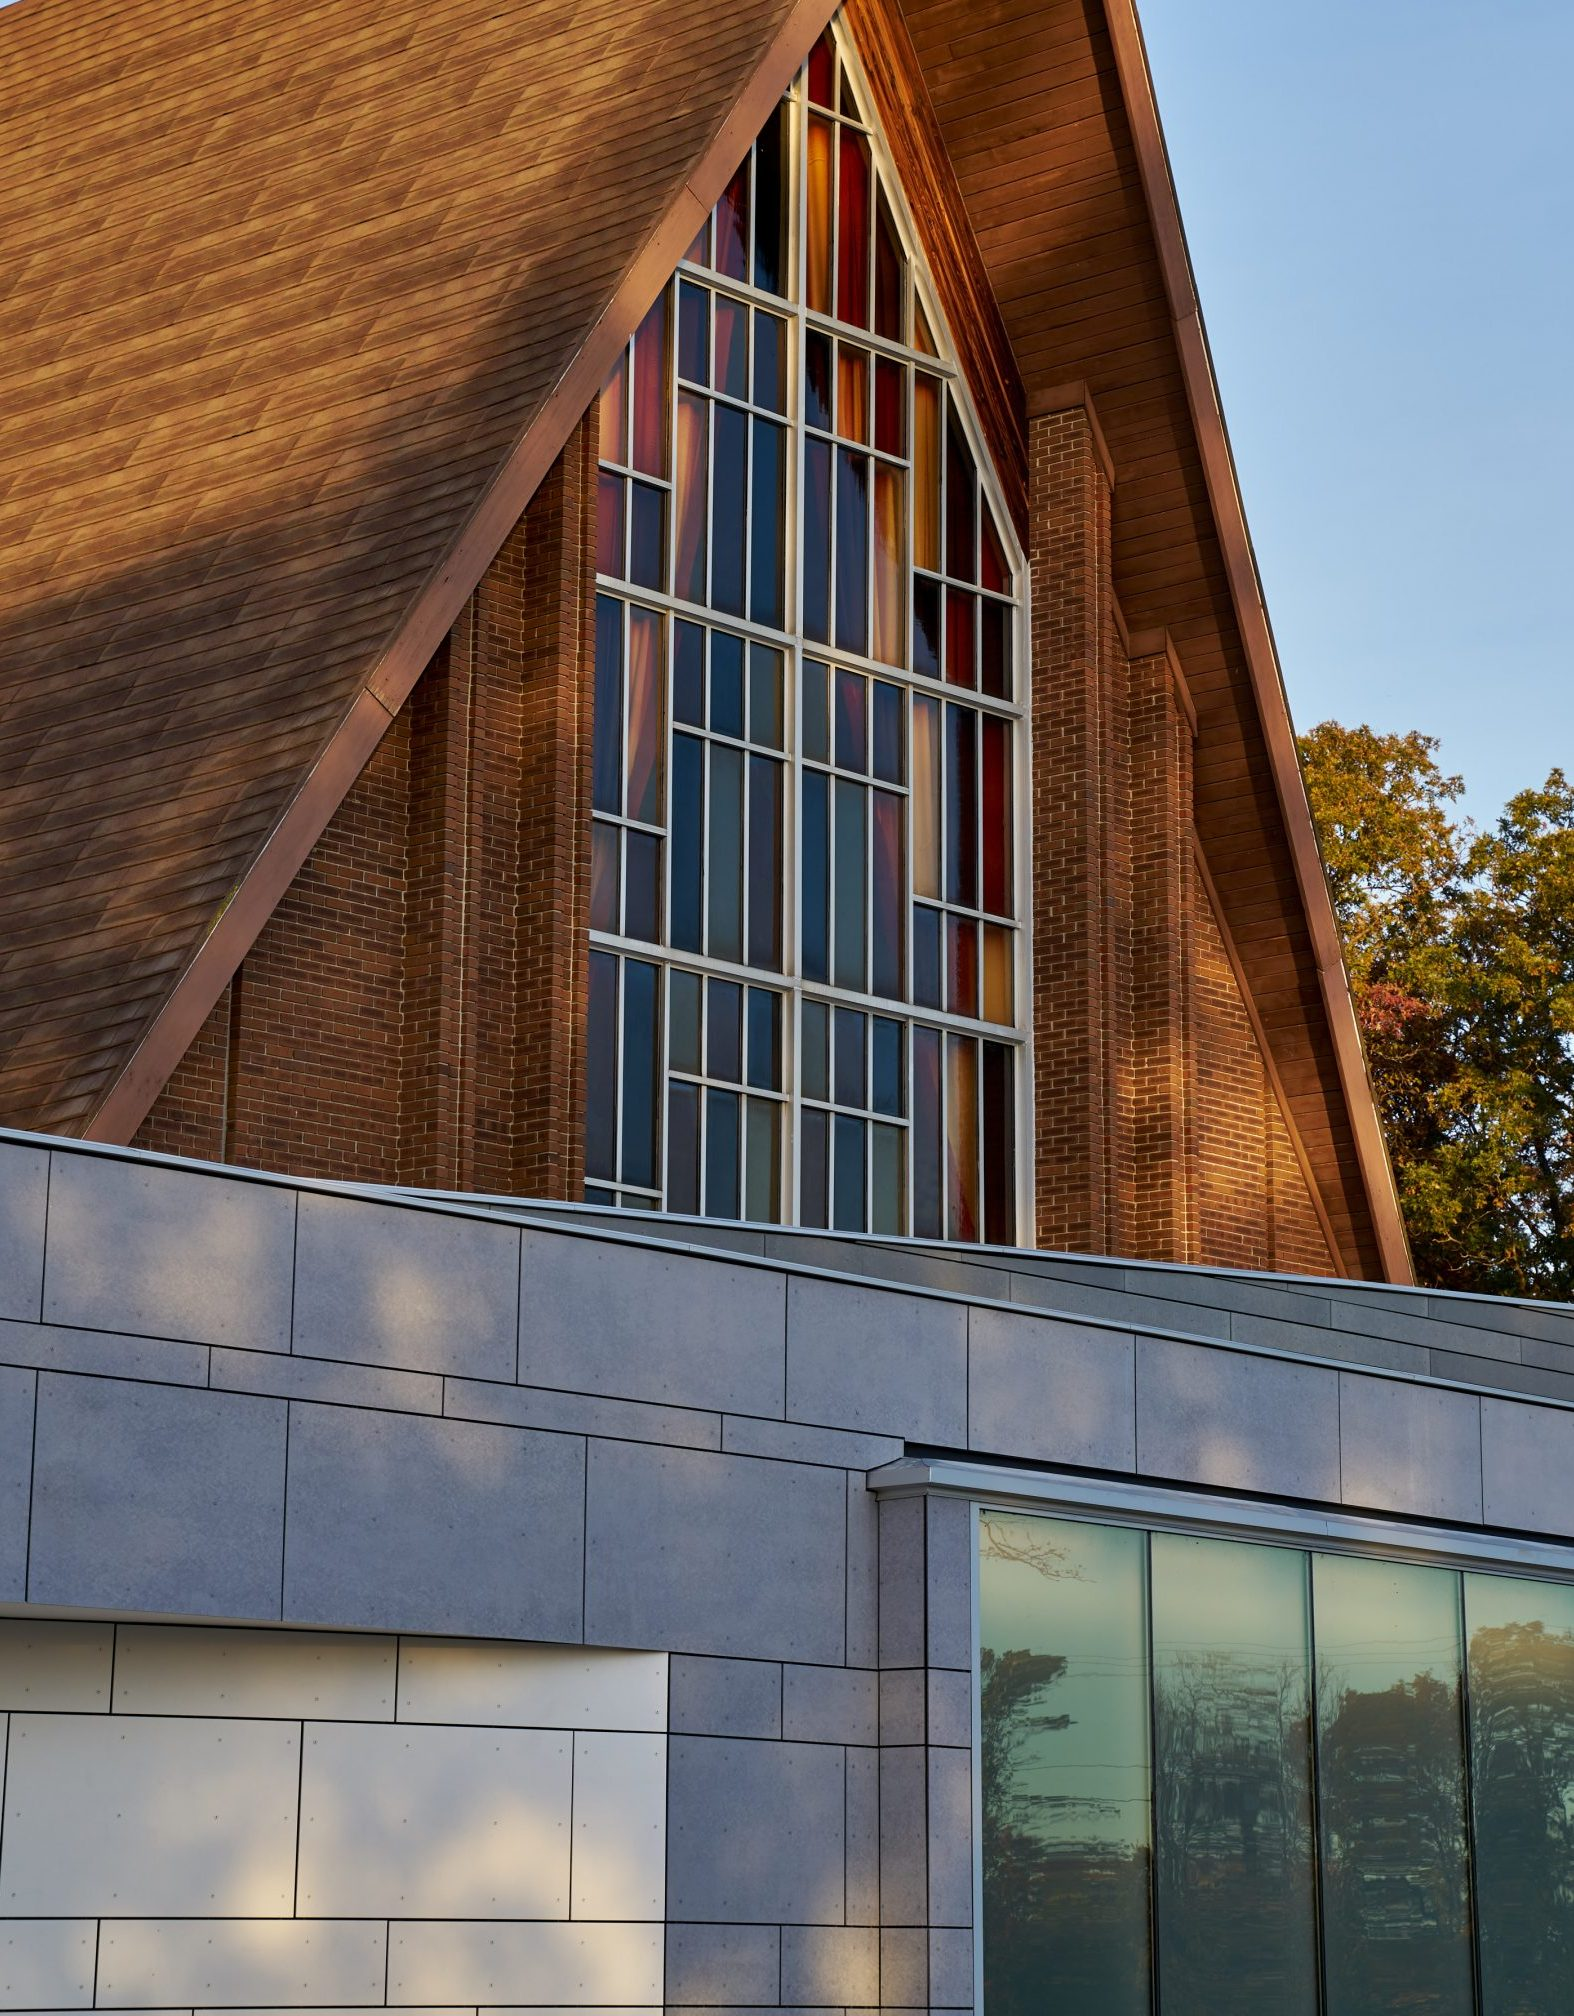 Exterior detail of panels and addition at Grace Bible Church Project in Ann Arbor Michigan Architecture and Interior Design